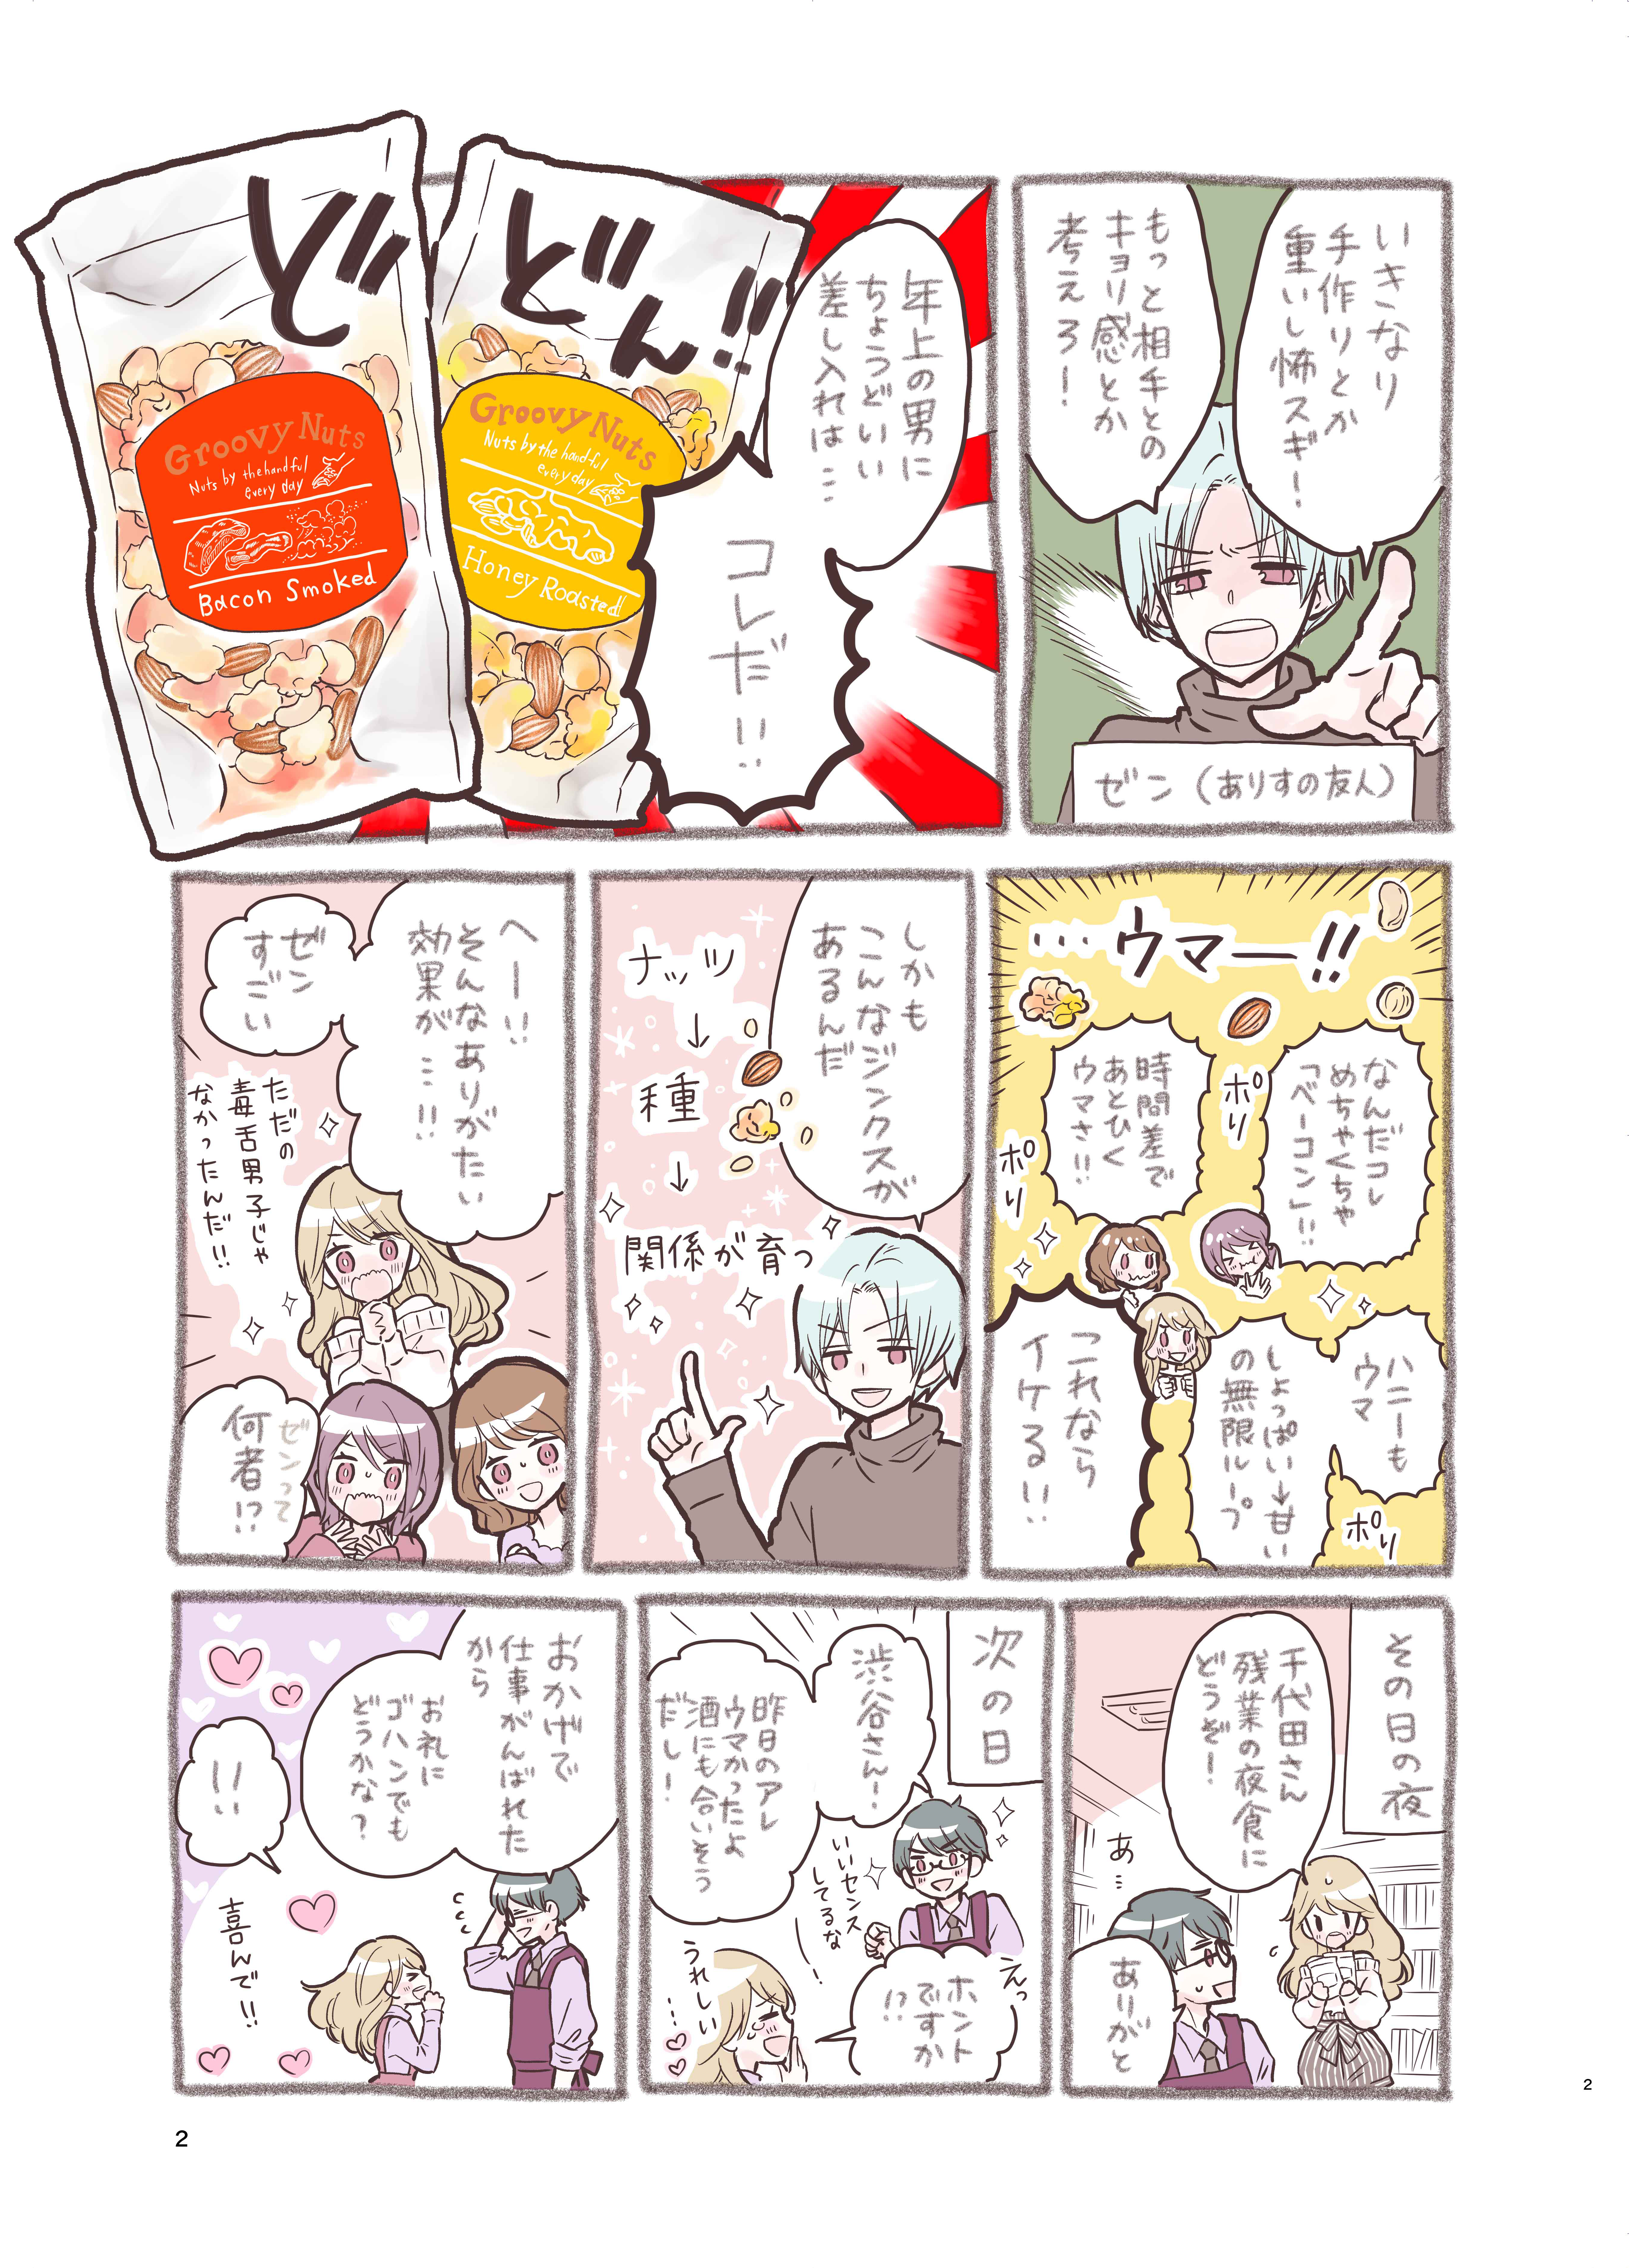 sweets01-02